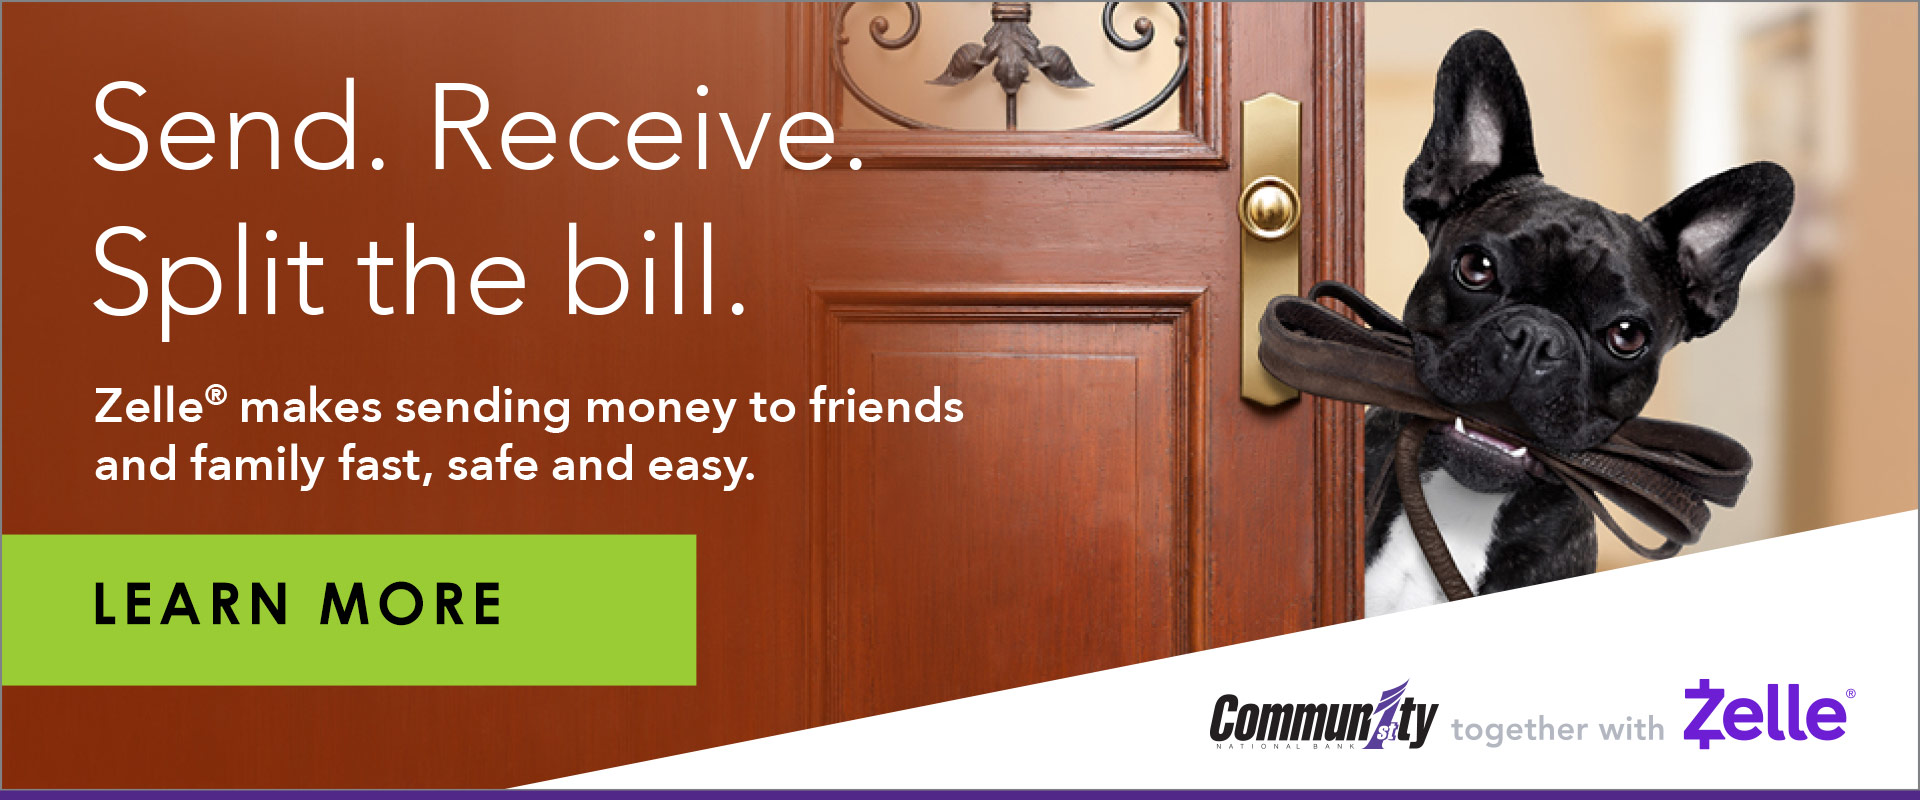 Putting Relationships First :: Community First National Bank